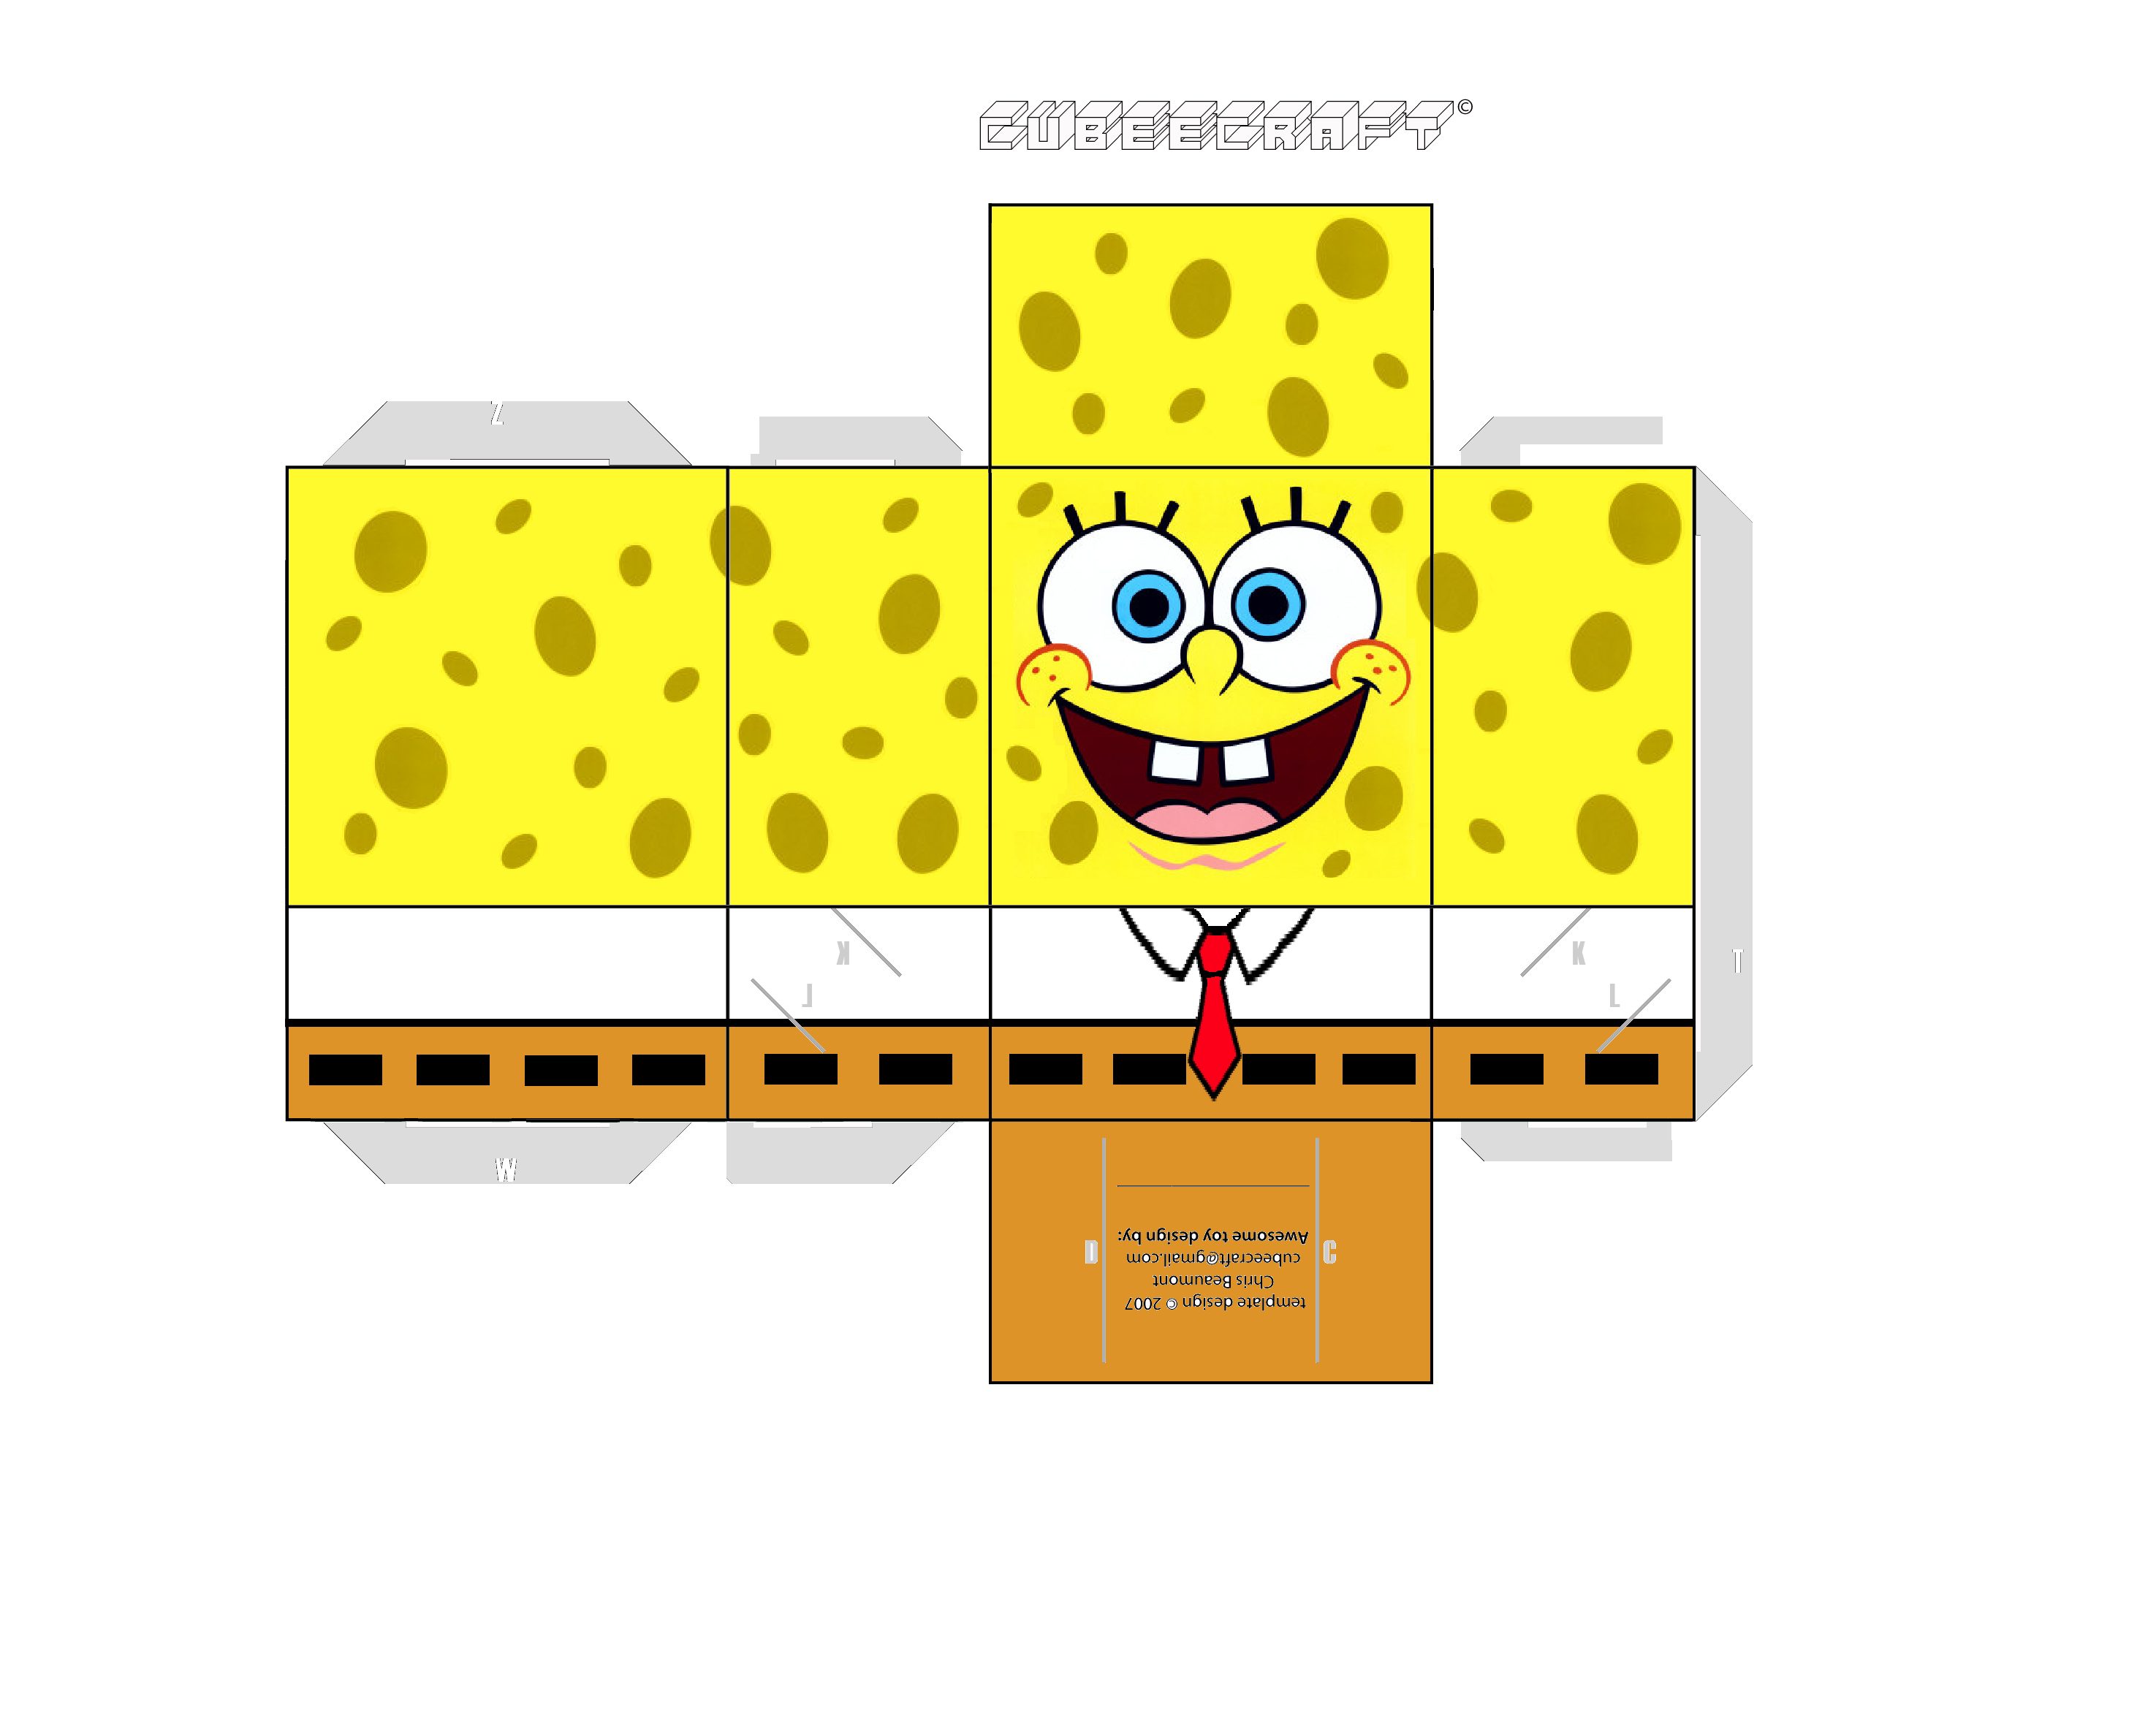 Spongebob Party Invitations Free Printable is great invitations example